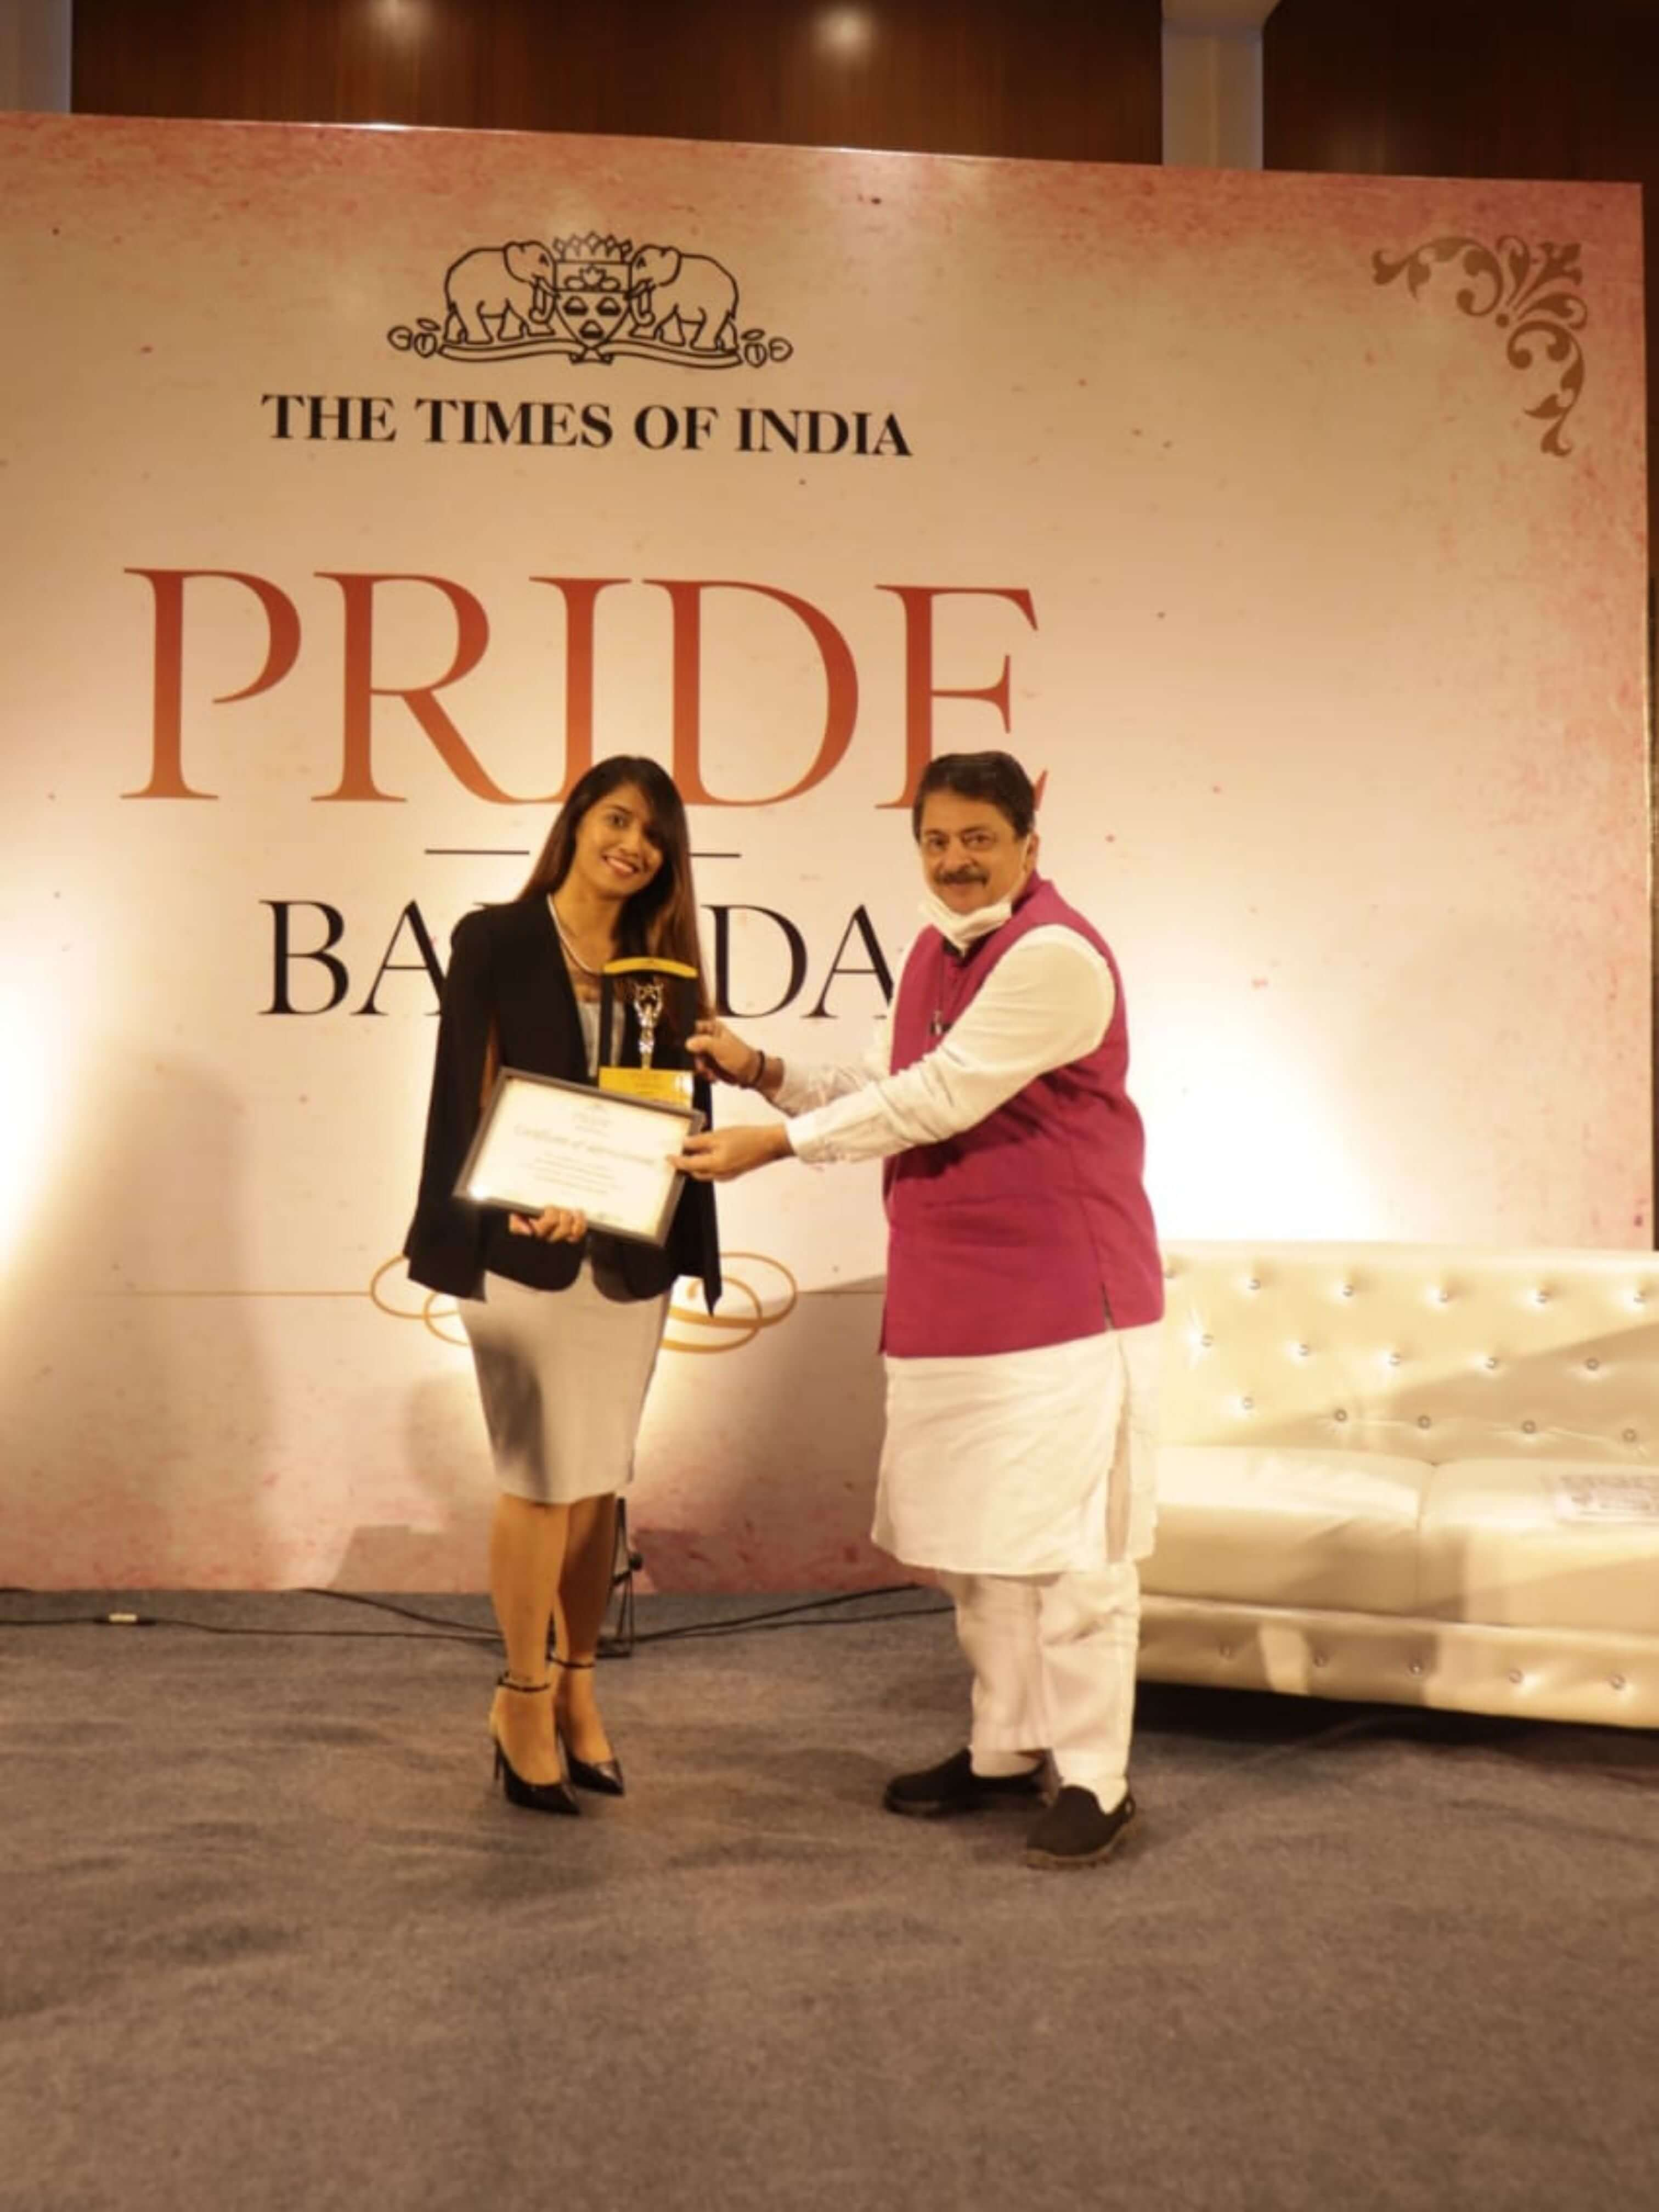 The Times of India - Pride of Baroda 2020